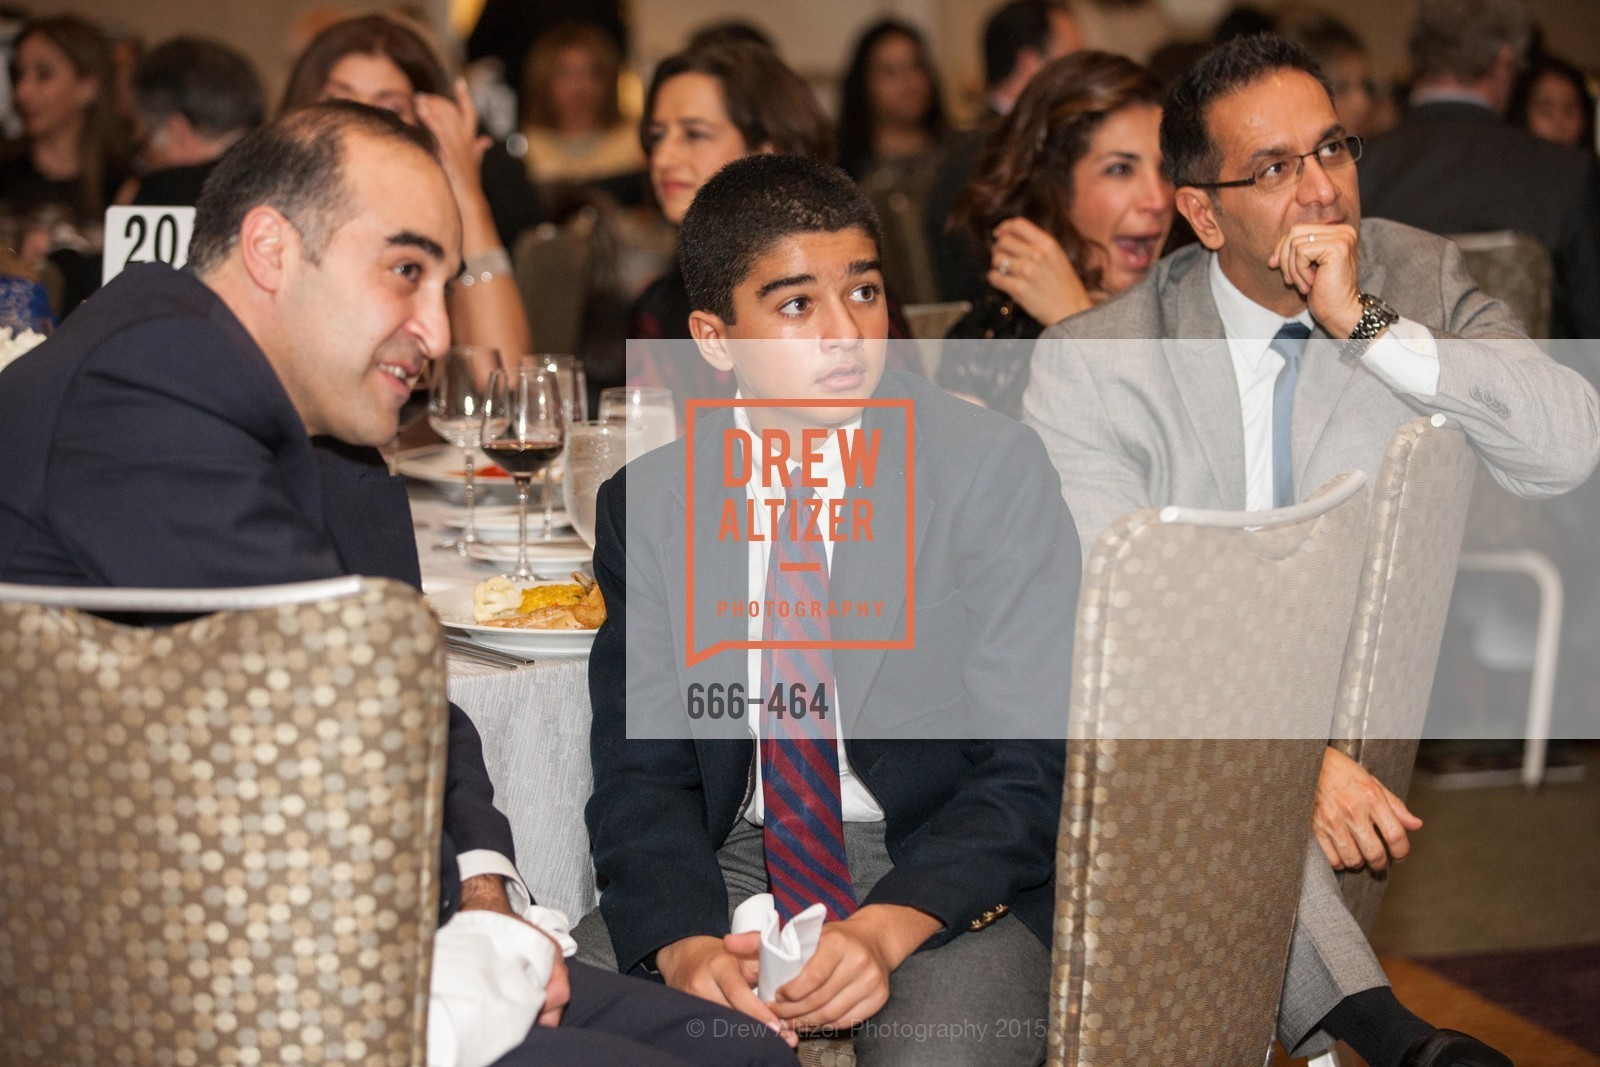 Nicholas Farzaneh, Operation Smile Presents THE SAN FRANCISCO 2015 SMILE GALA, InterContinental Hotel, November 7th, 2015,Drew Altizer, Drew Altizer Photography, full-service agency, private events, San Francisco photographer, photographer california